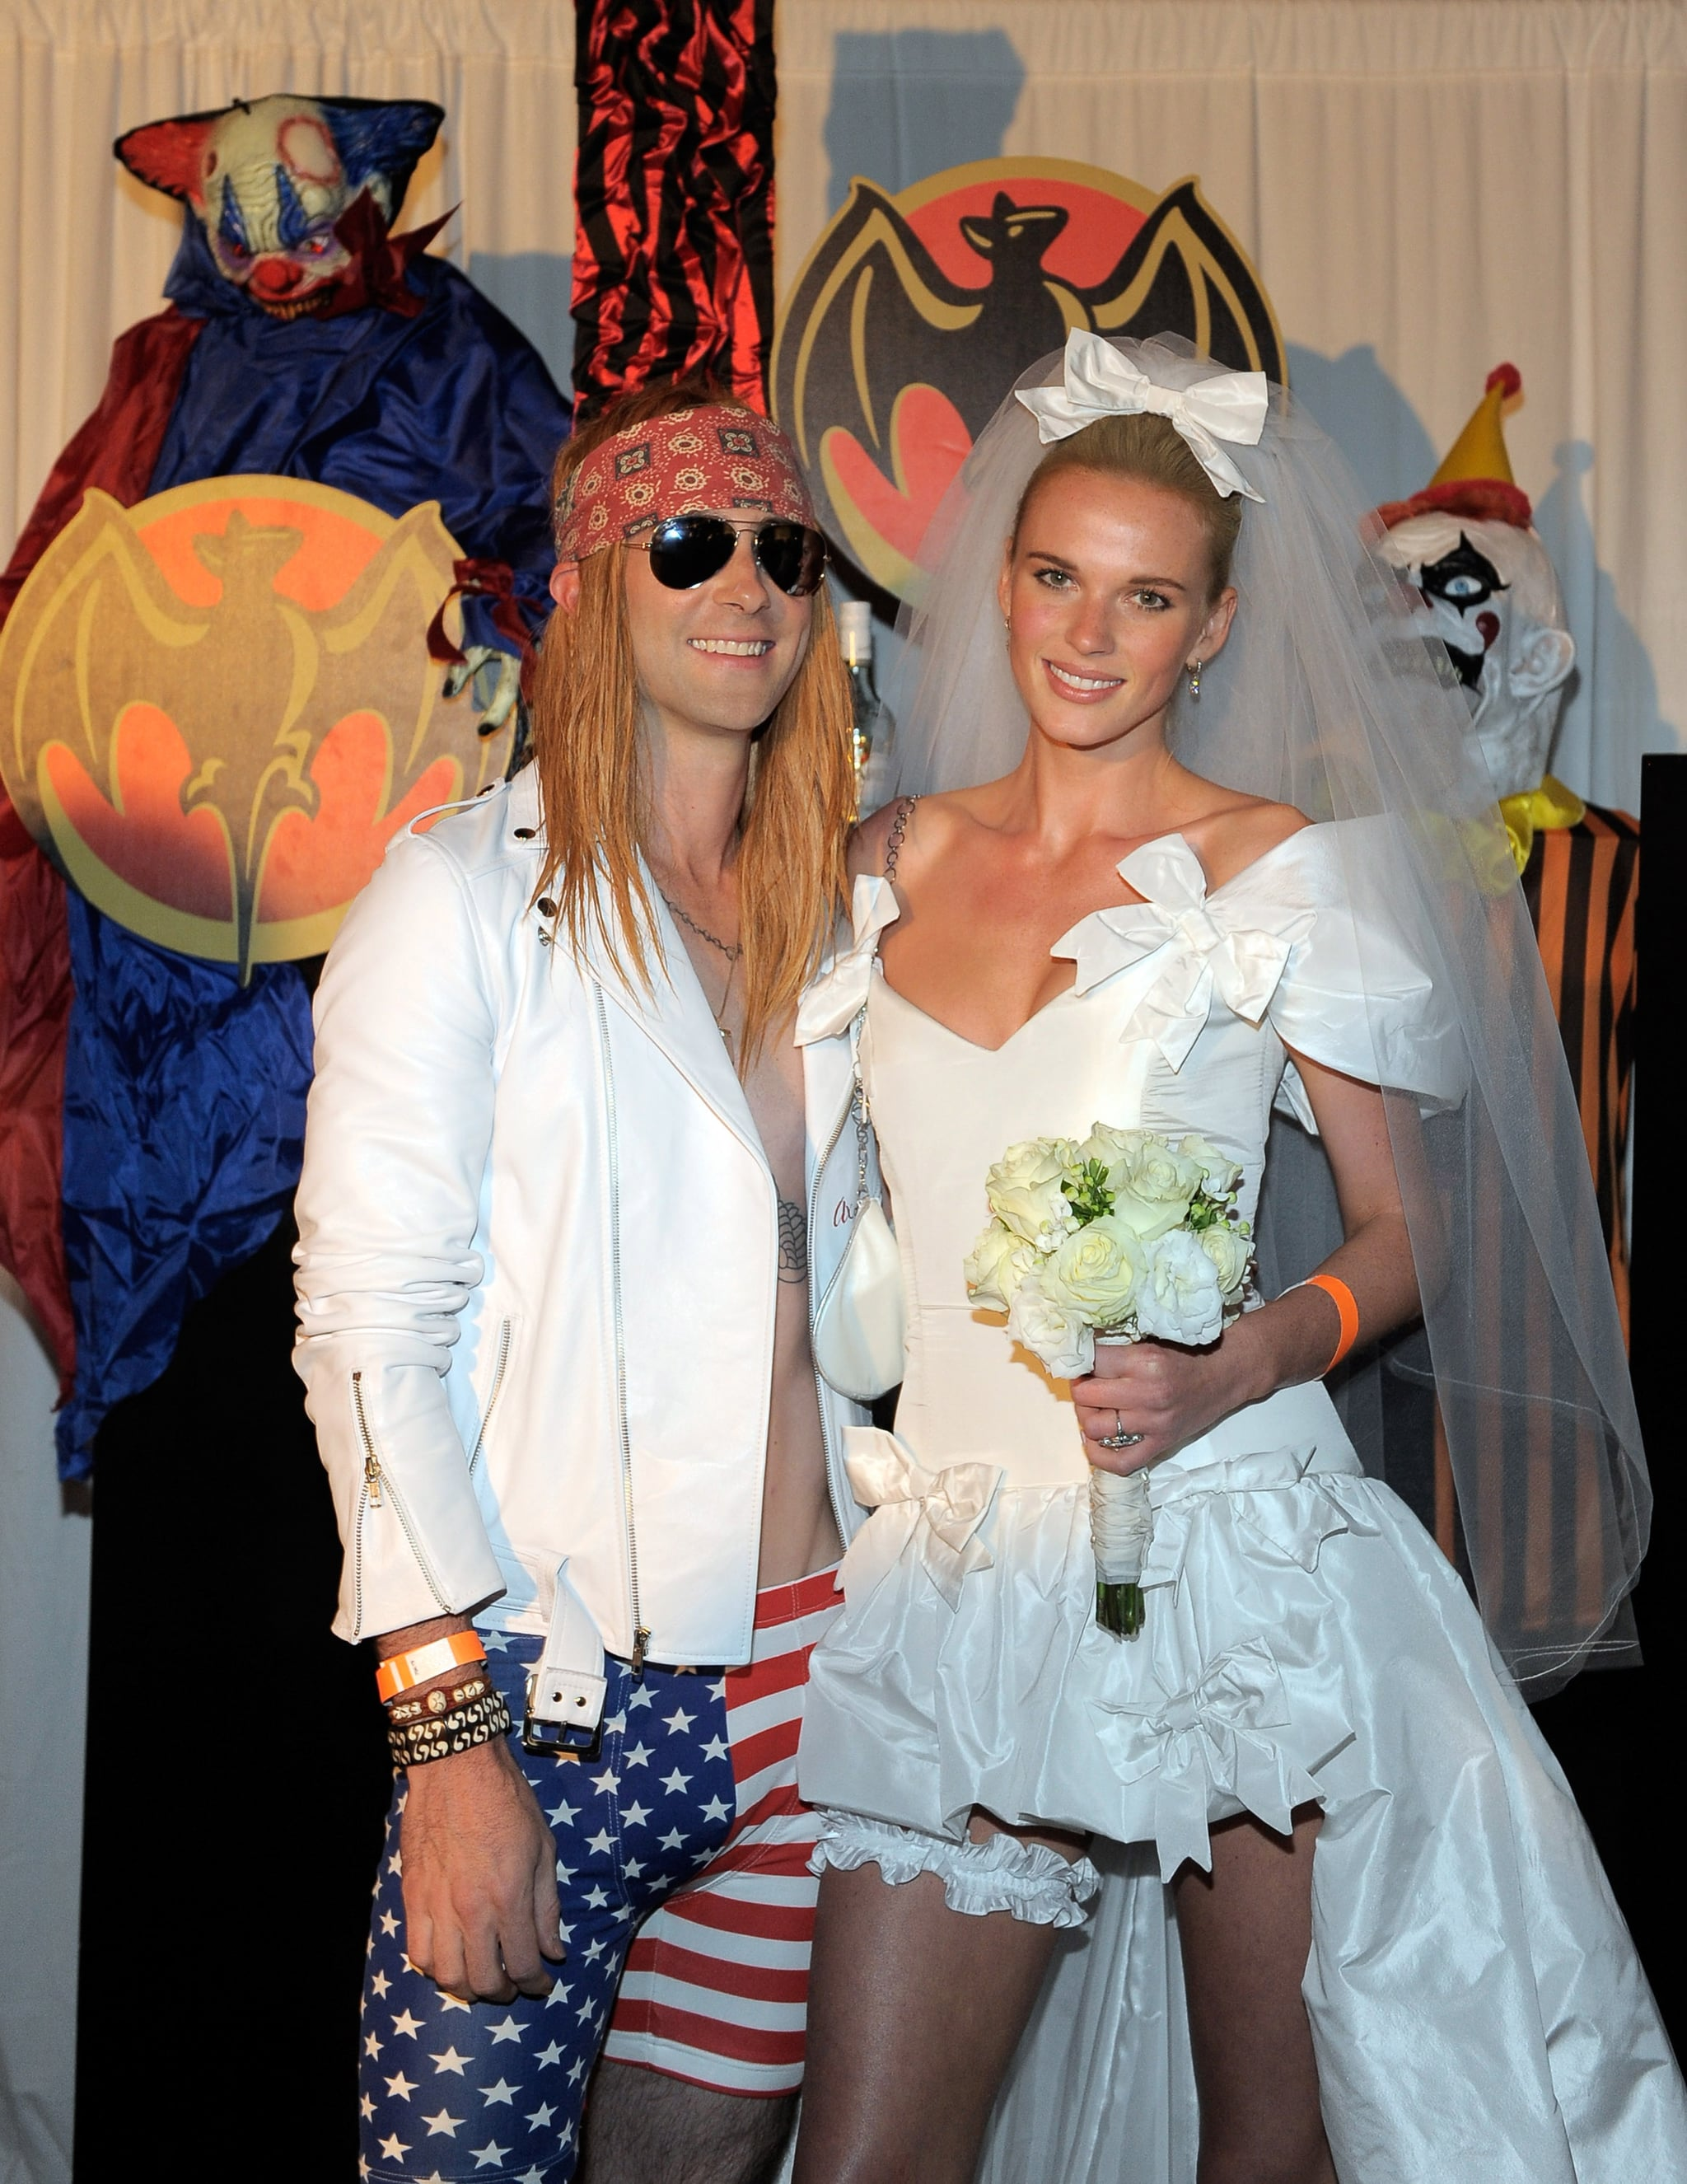 Axl Rose And Stephanie Seymour Celebs Go All Out In Pop Culture Halloween Costumes Popsugar Entertainment Photo 20